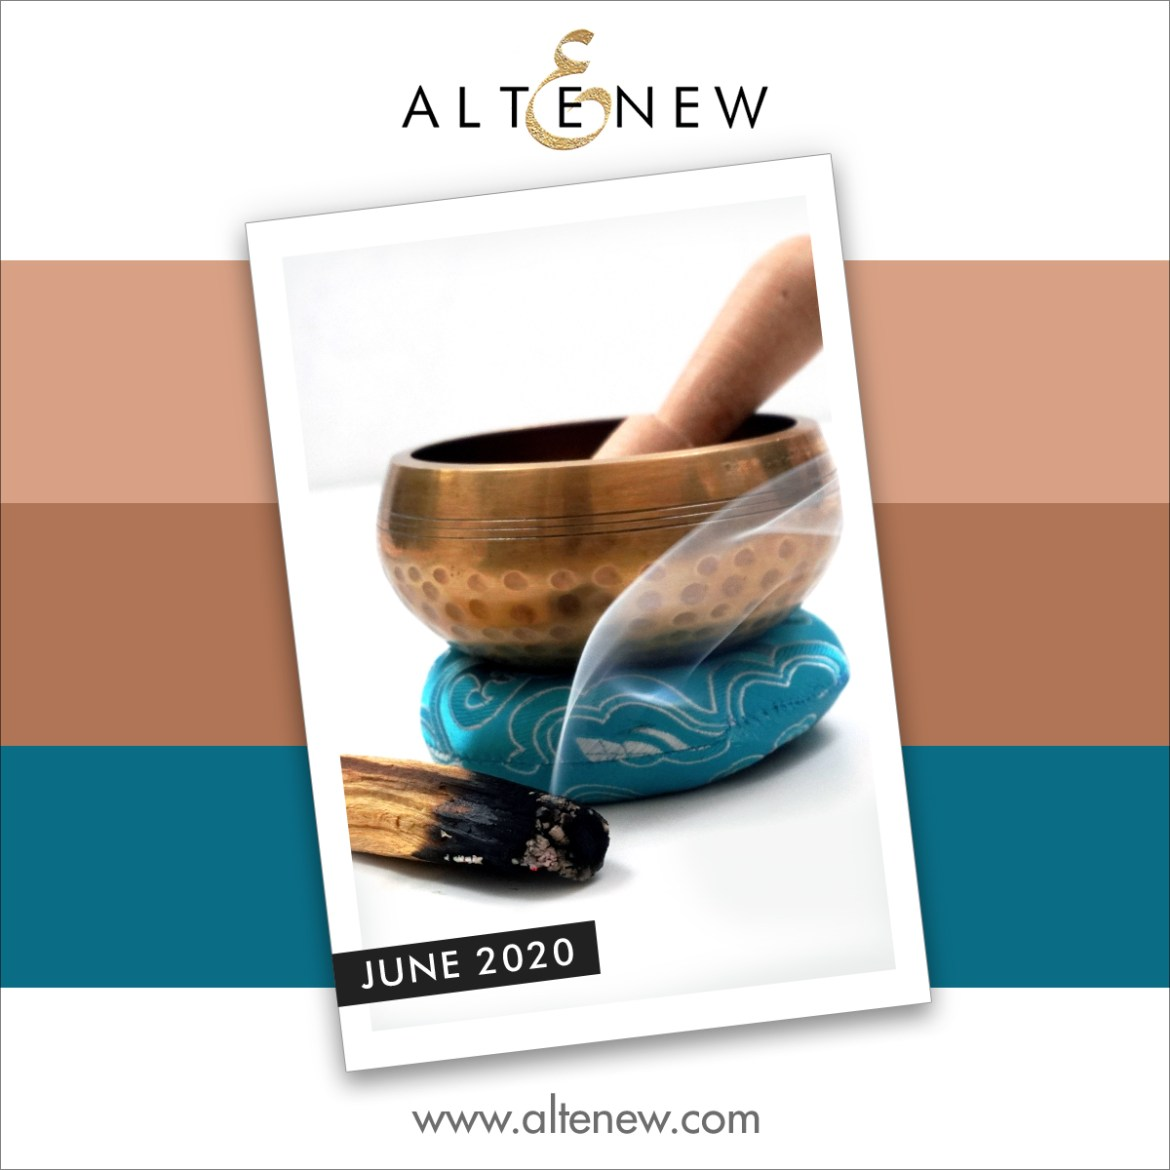 Altenew June 2020 Inspiration Photo